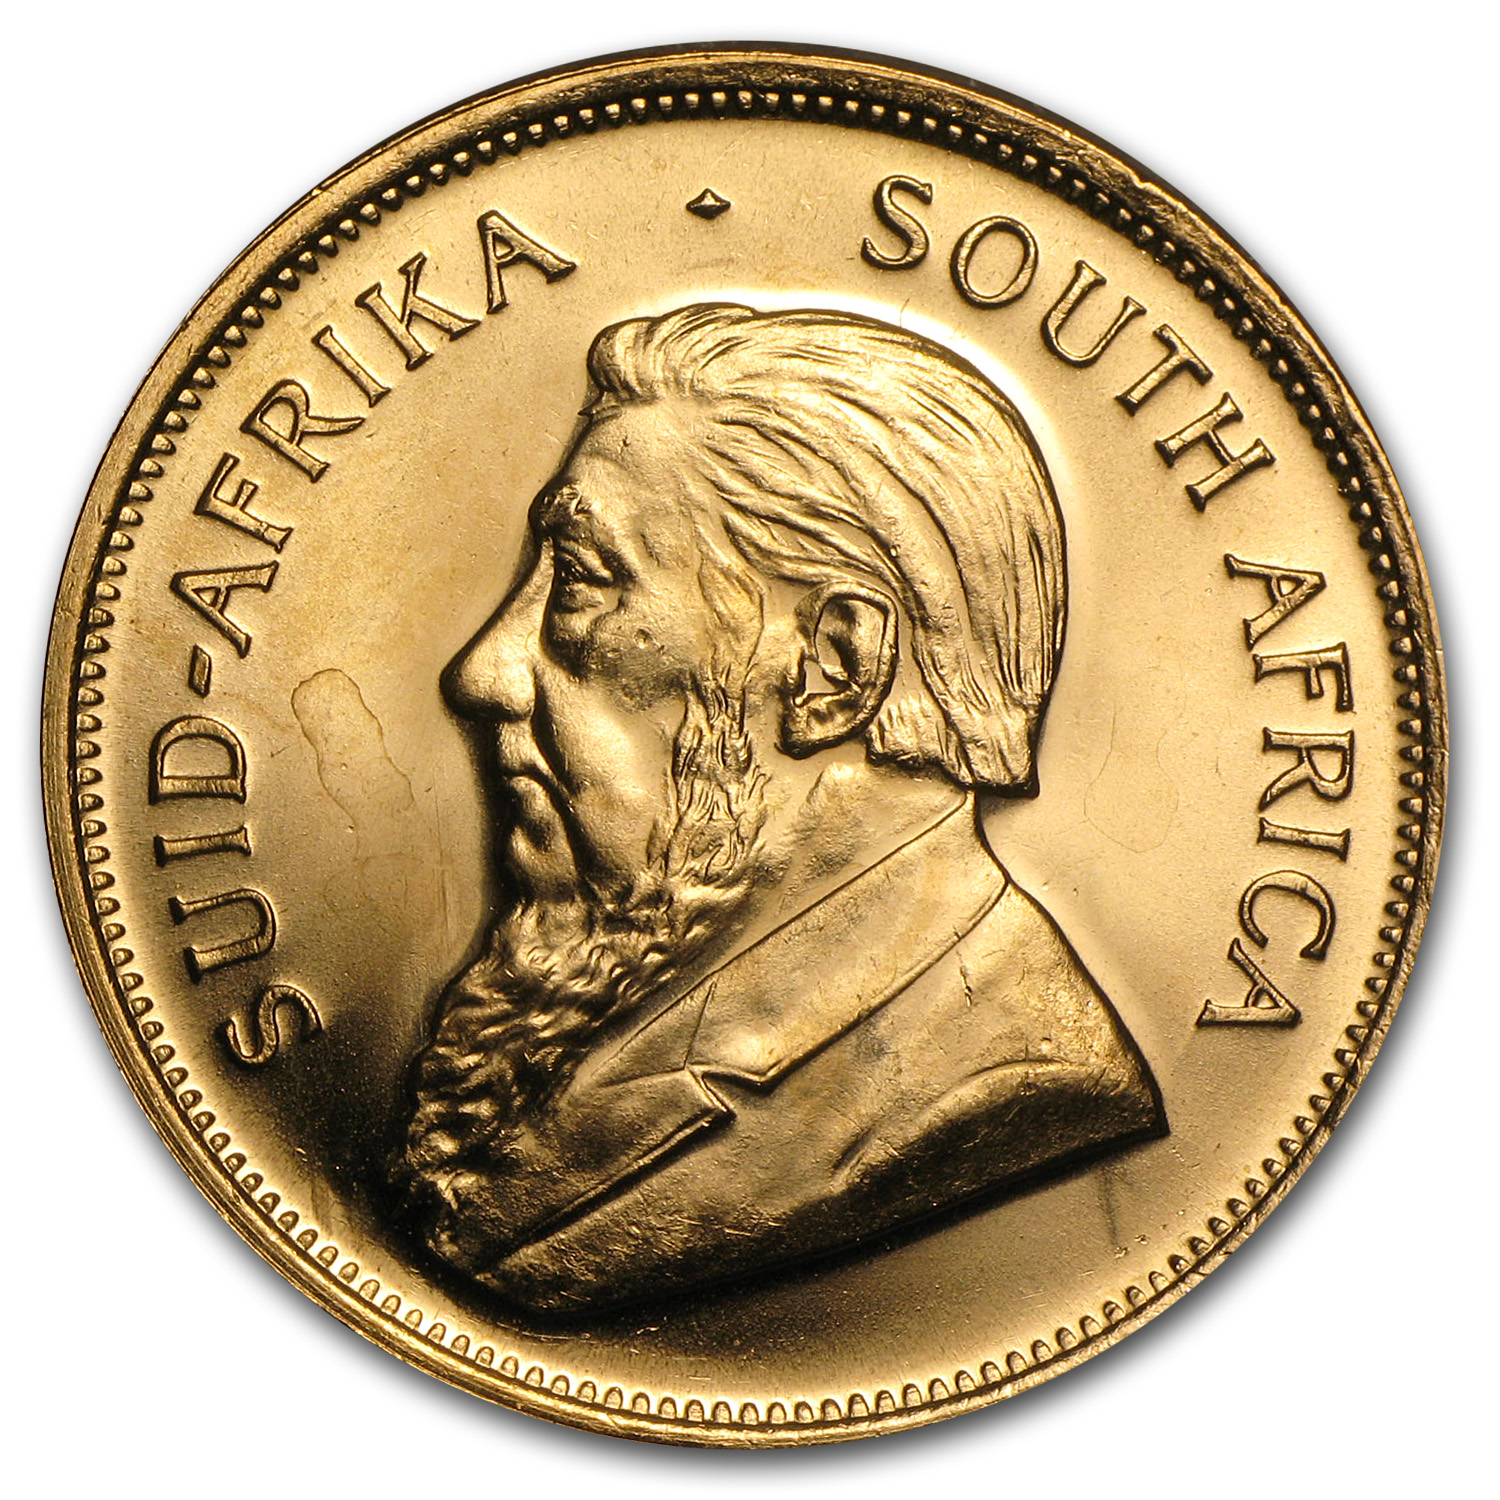 1988 South Africa 1 oz Gold Krugerrand